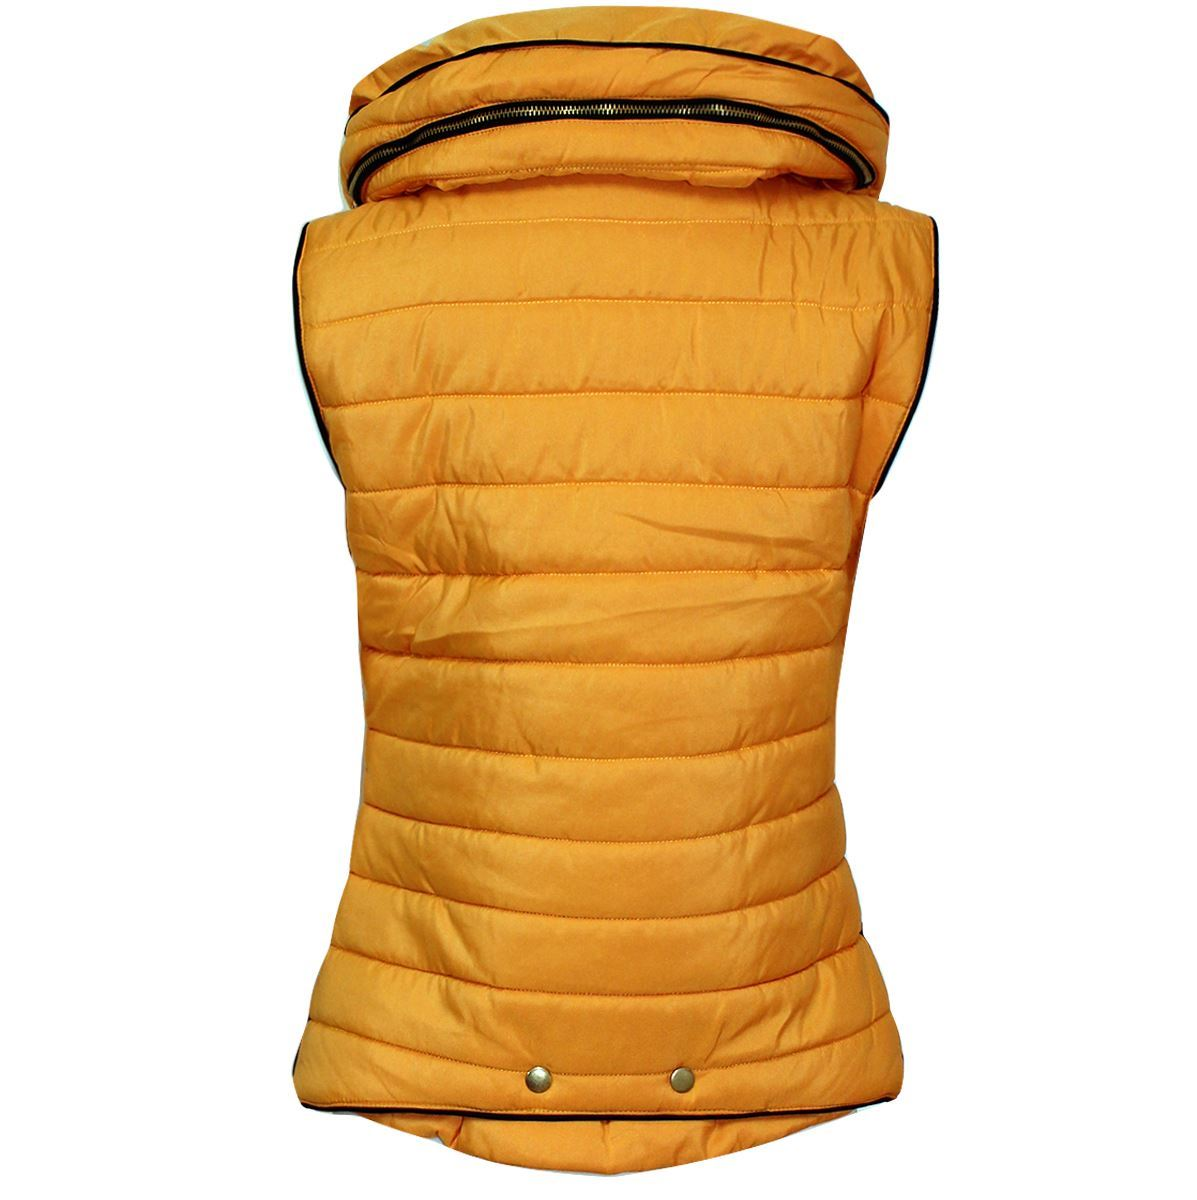 Ladies-Gilet-Quilted-Padded-Body-Warmer-Sleeveless-Fur-Collar-Puffer-Jacket-Coat thumbnail 11